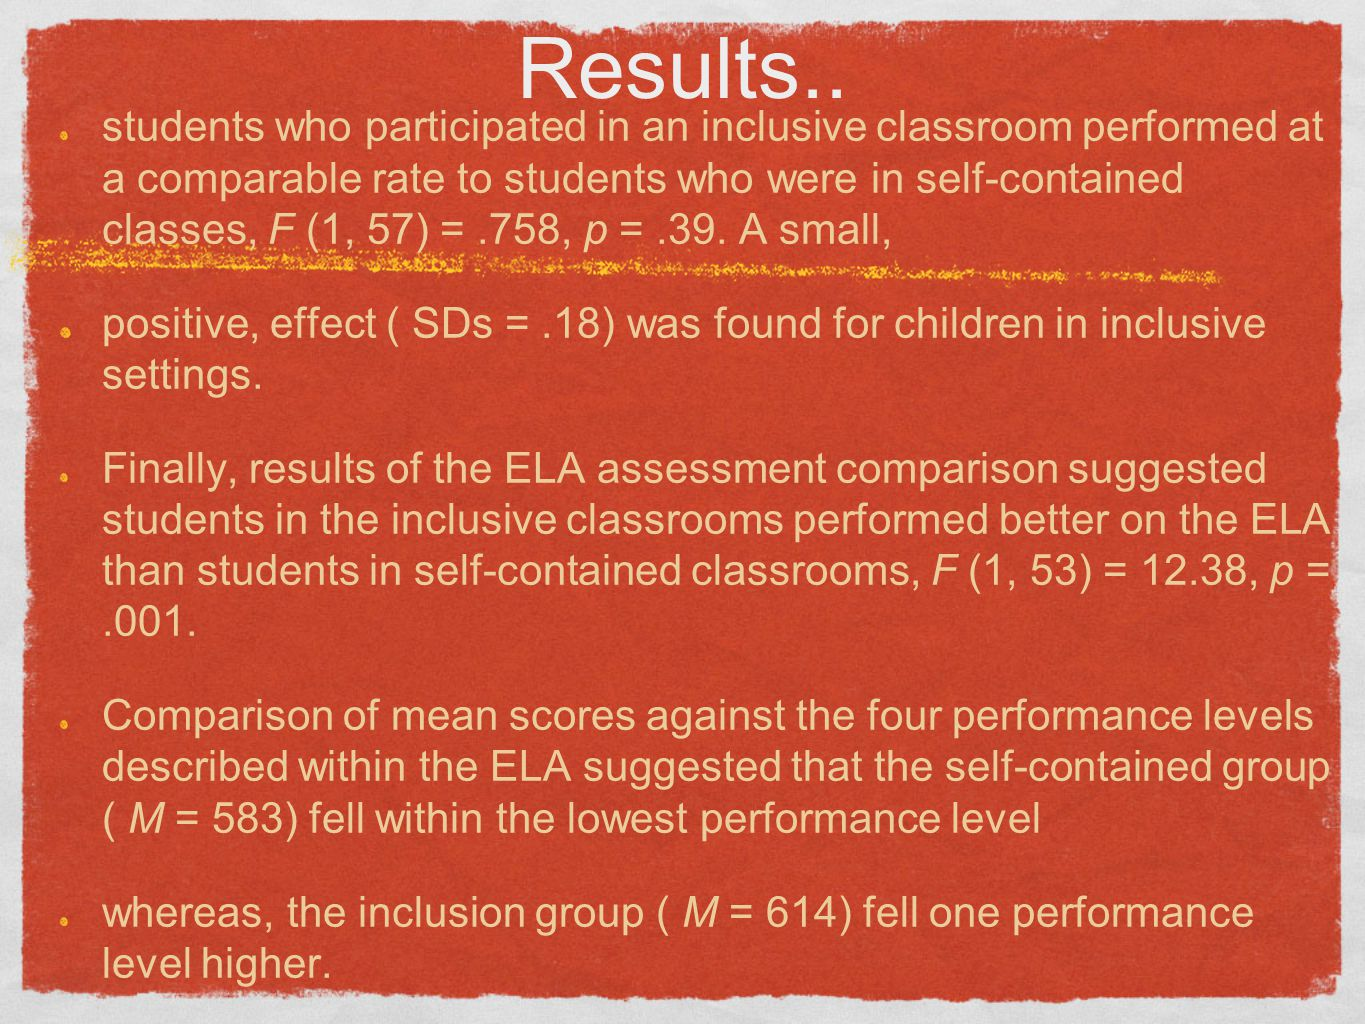 Results.. students who participated in an inclusive classroom performed at a comparable rate to students who were in self-contained classes, F (1, 57)